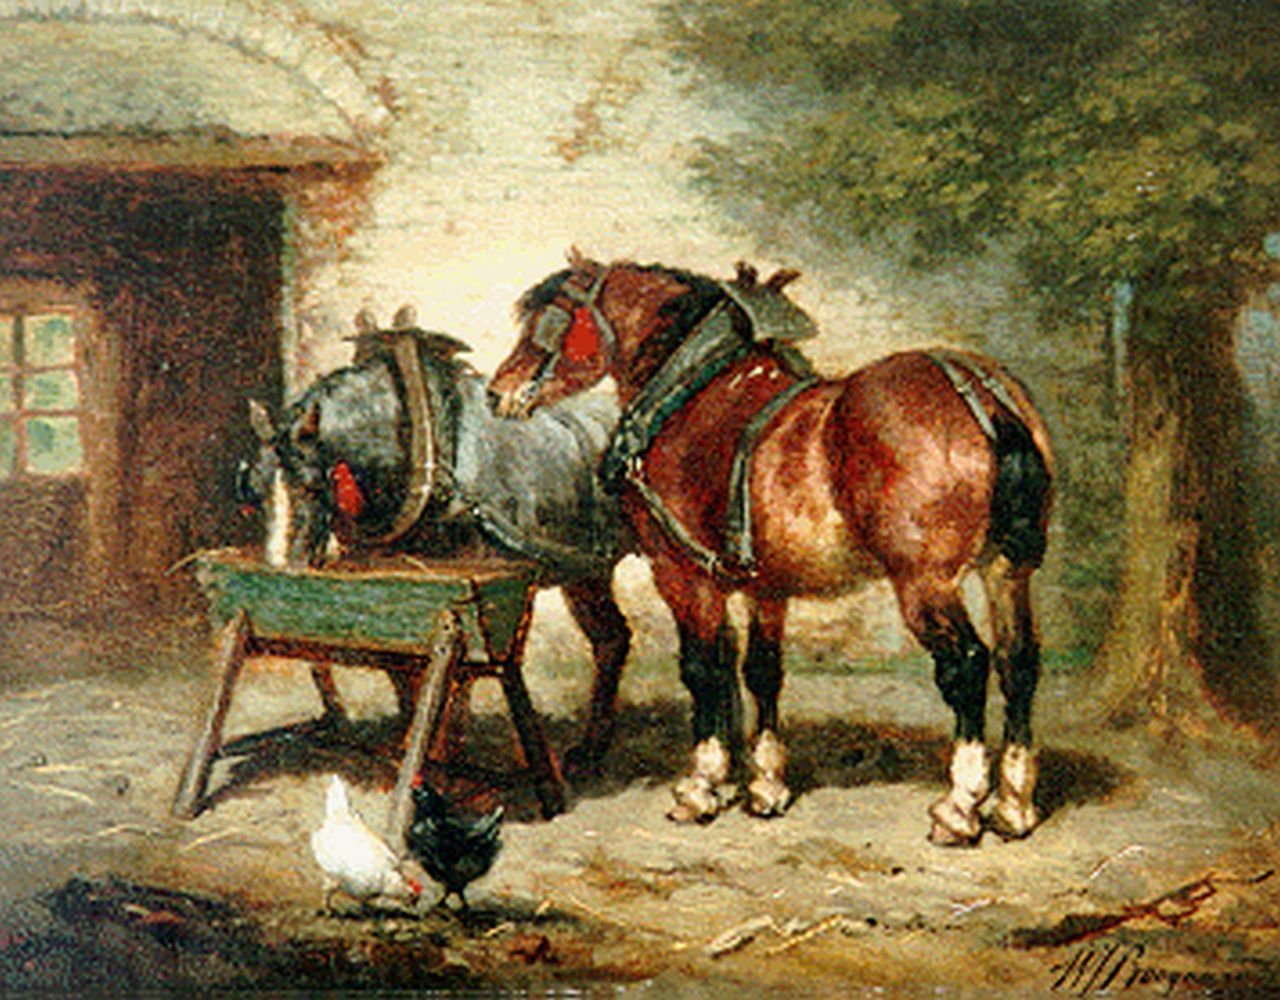 Boogaard W.J.  | Willem Johan Boogaard, Horses eating, oil on panel 27.0 x 21.0 cm, signed l.r.